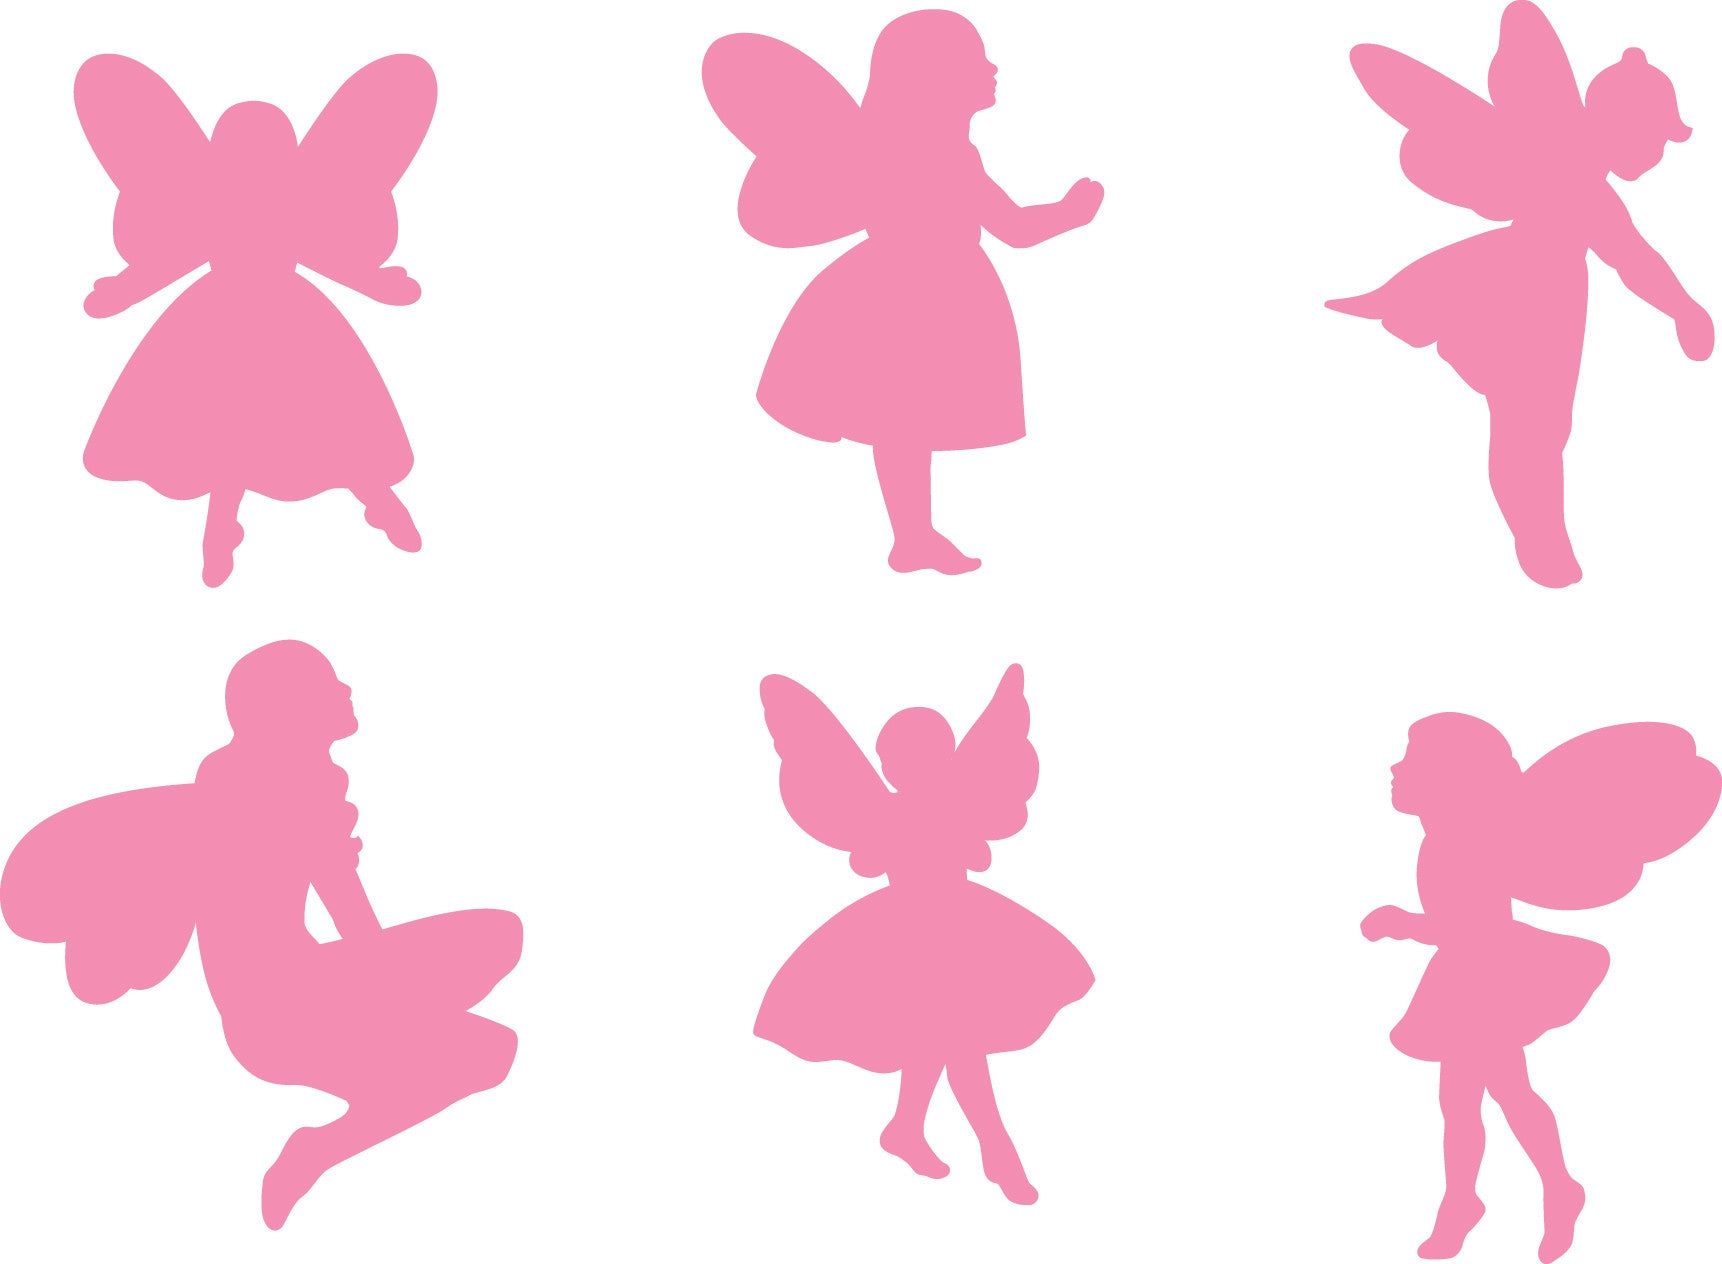 6 fairy shapes